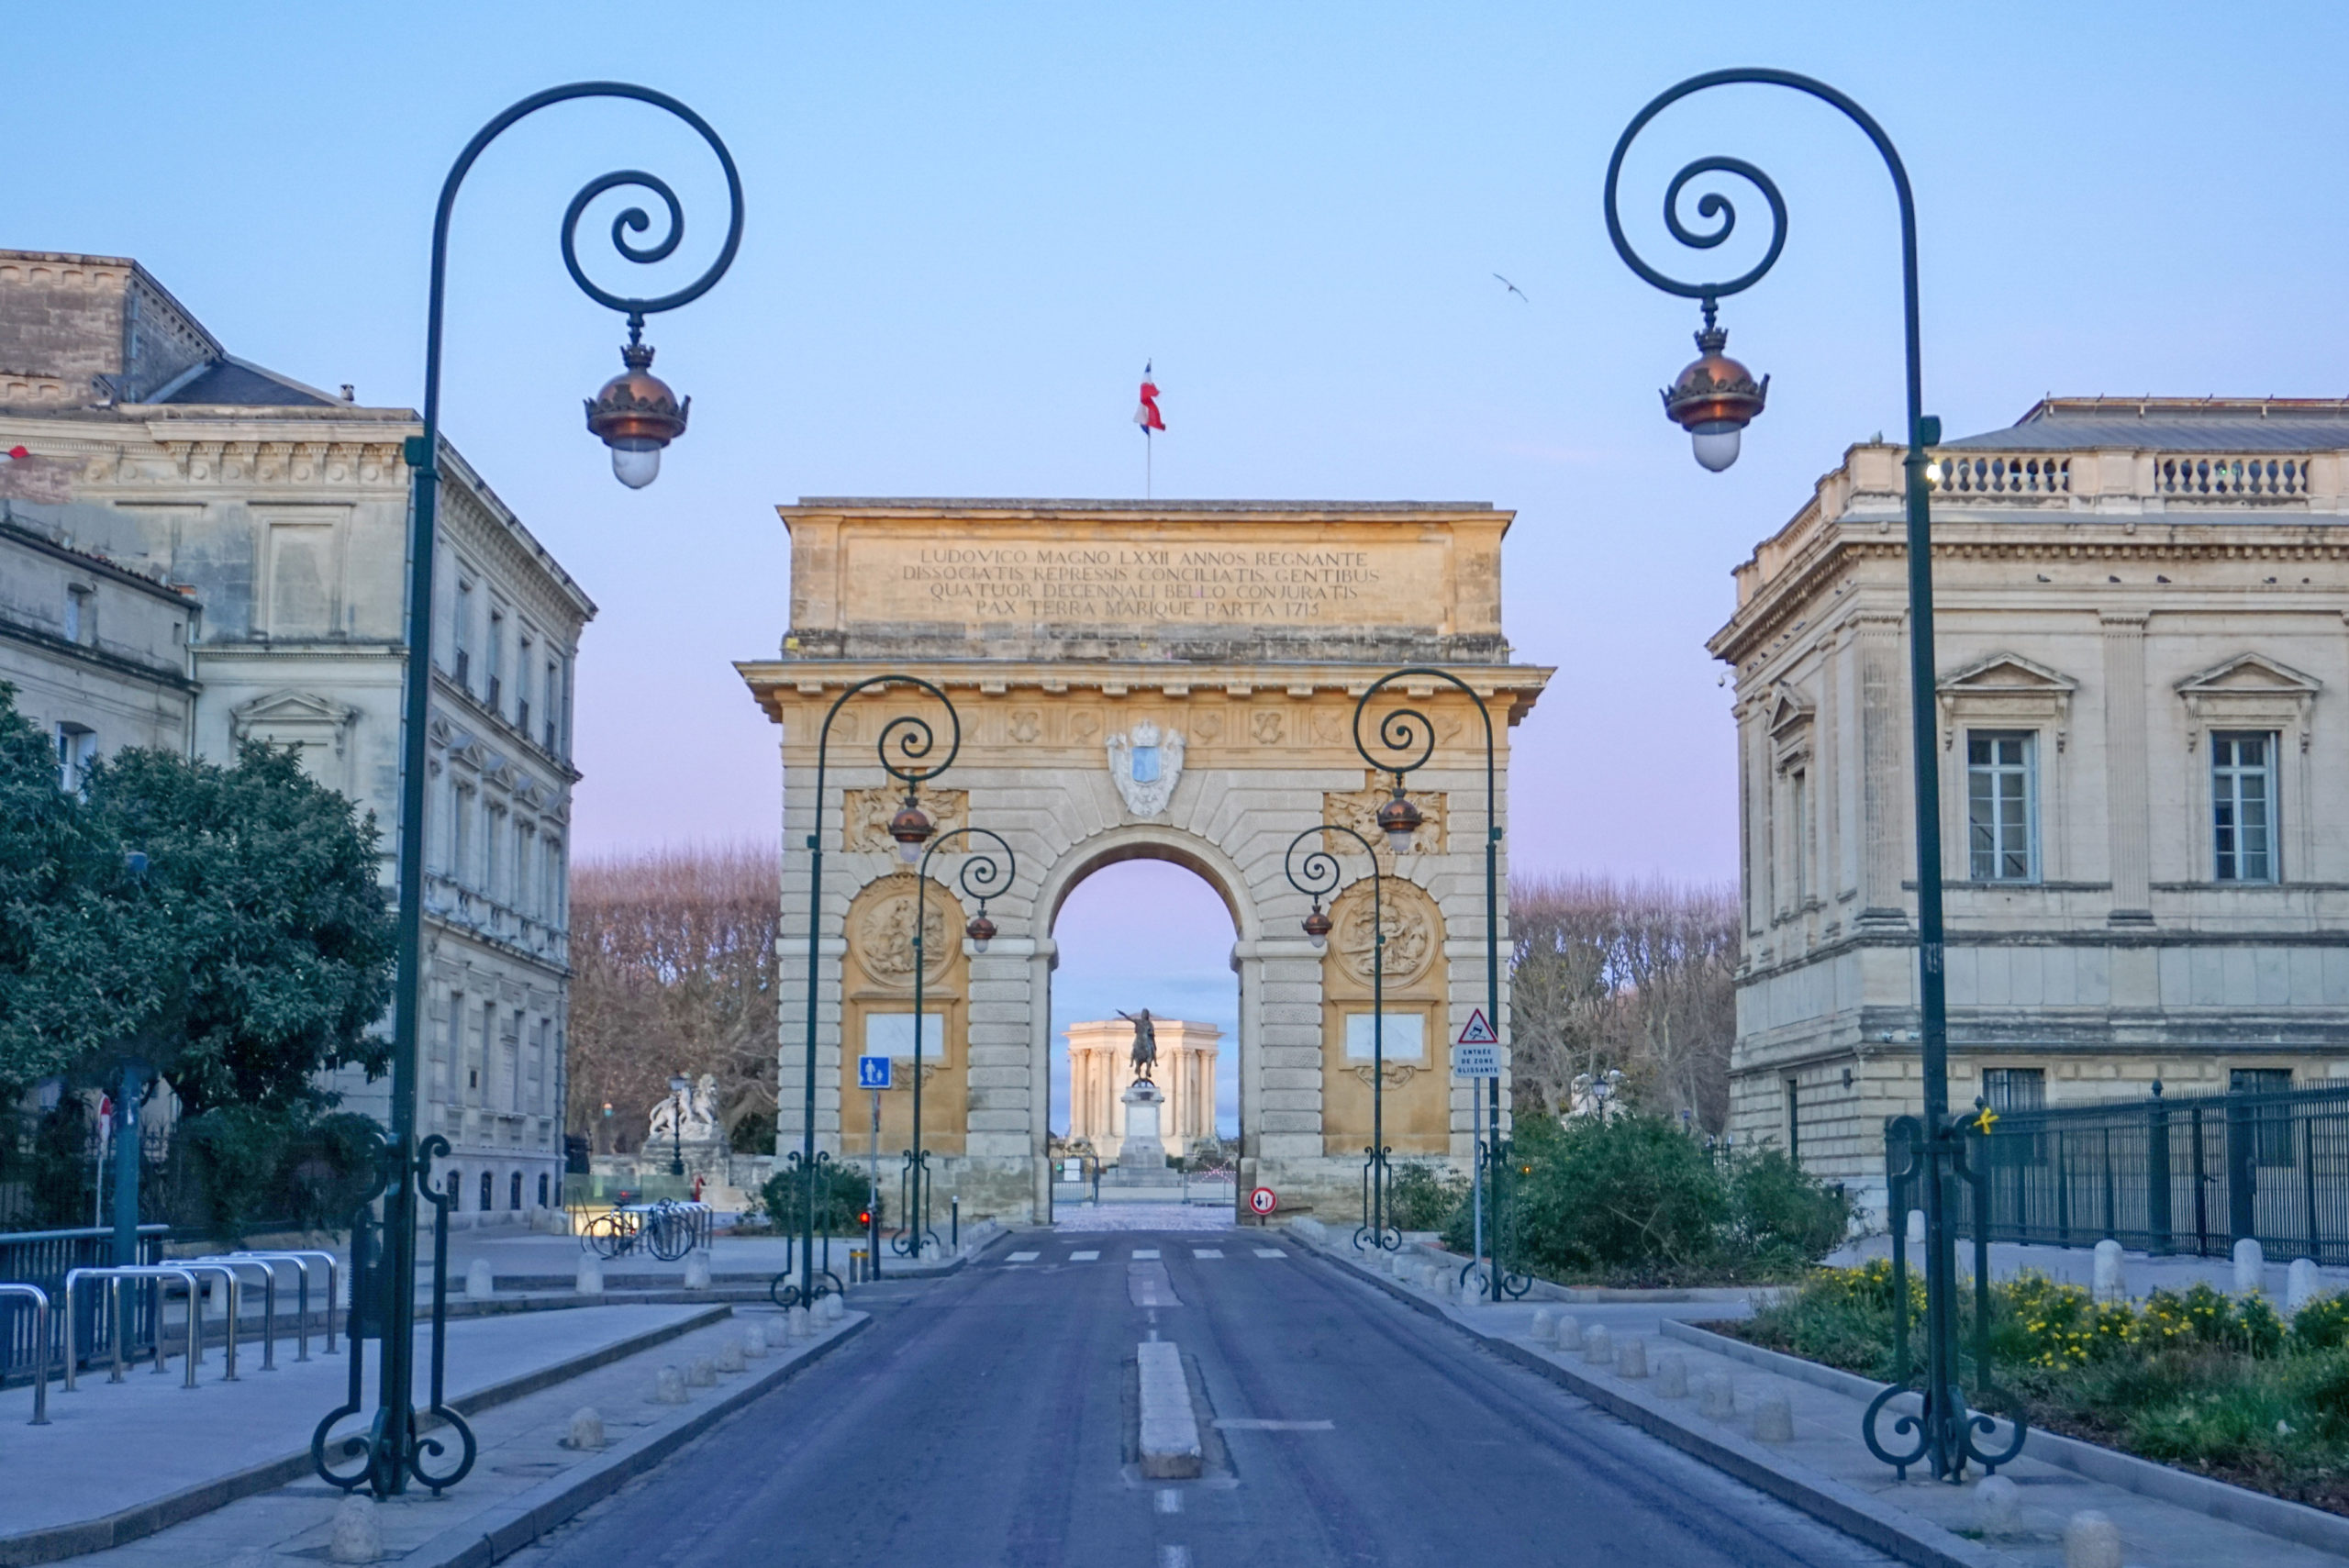 Port de Peyrou in Montpellier, France